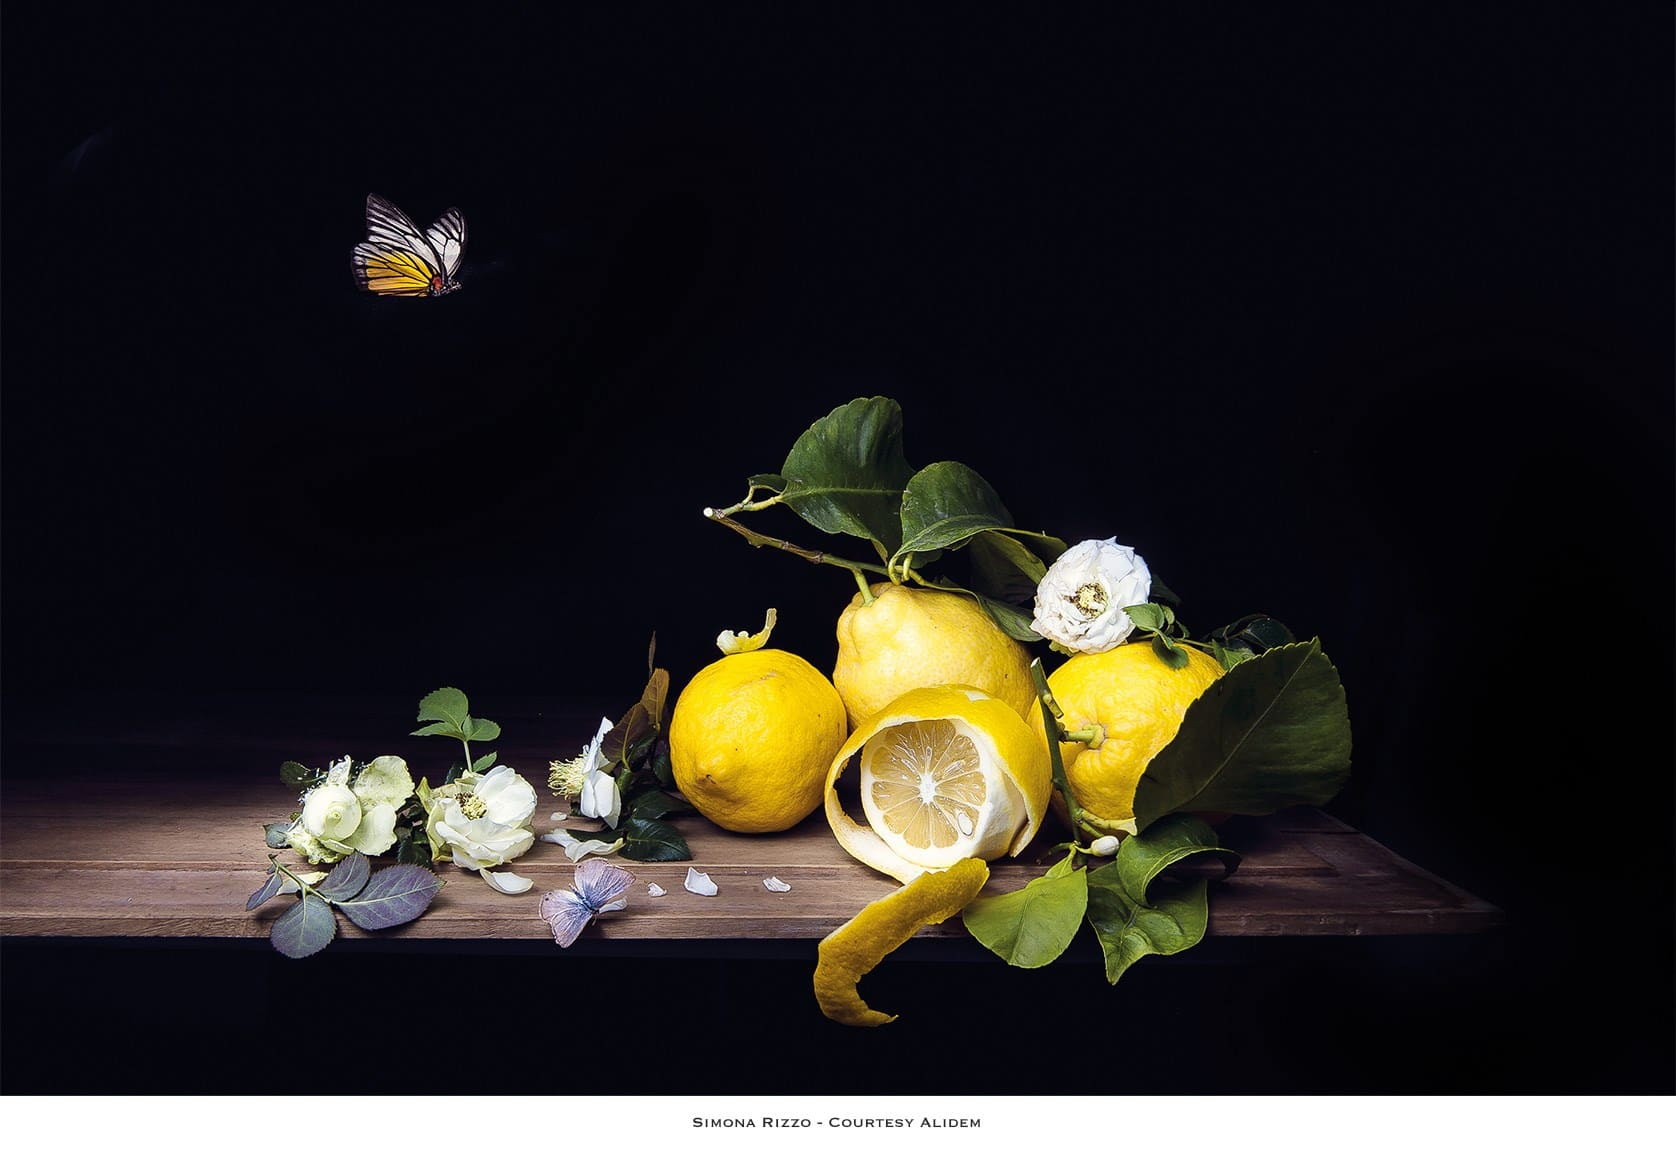 Nature Morte by Simona Rizzo